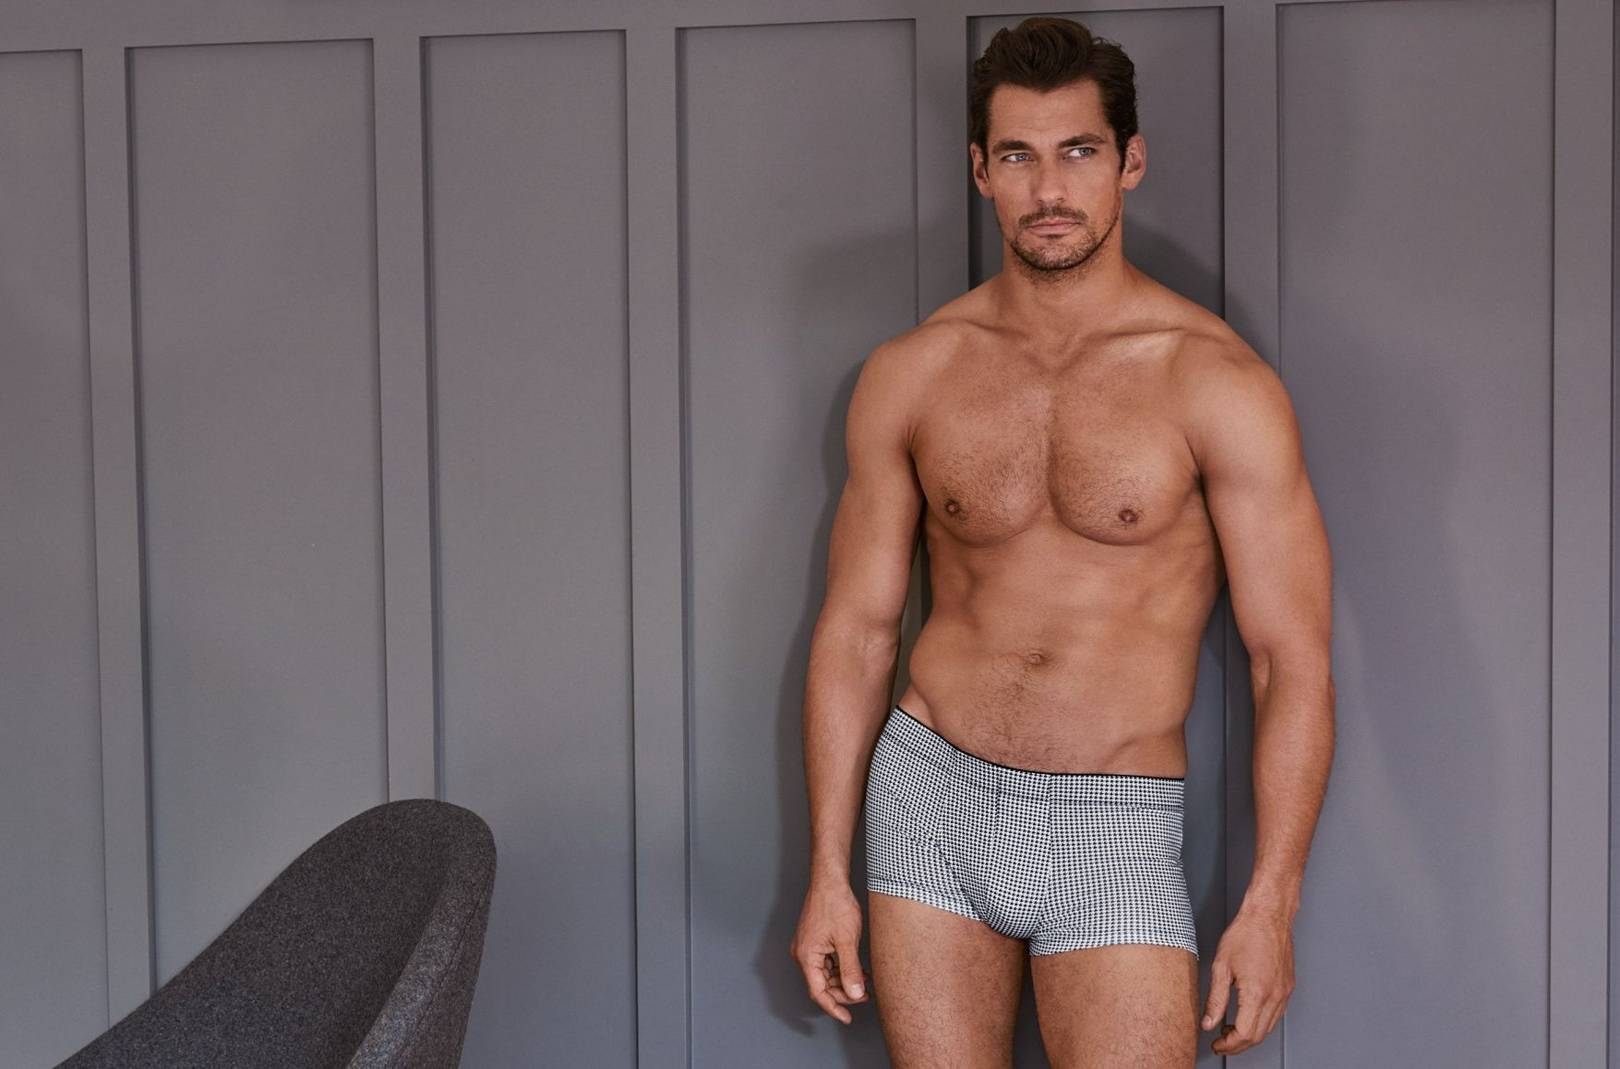 f3a7ff8046dd7 David Gandy puts us mere mortals to shame once again with his M&S;  underwear ads | British GQ